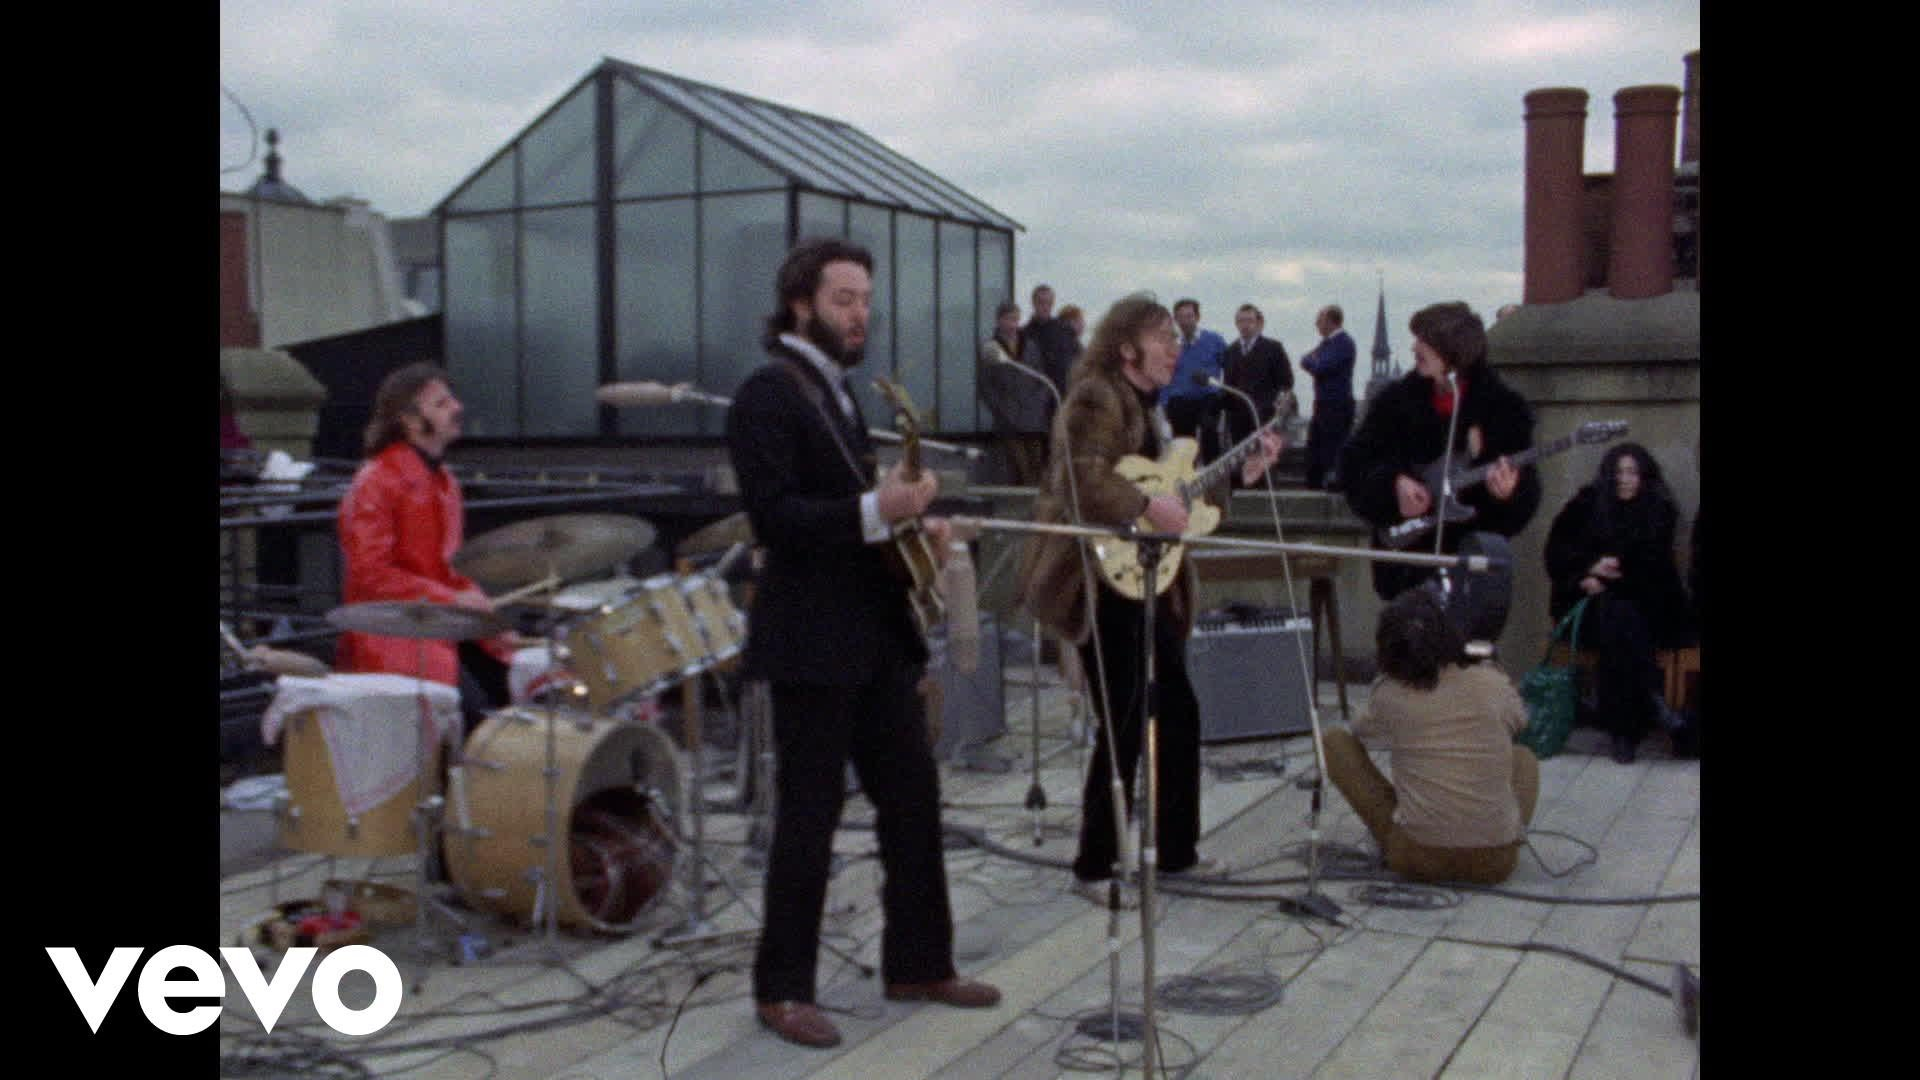 The Beatles versus The Rolling Stones https://t.co/7v8TFFuAl7